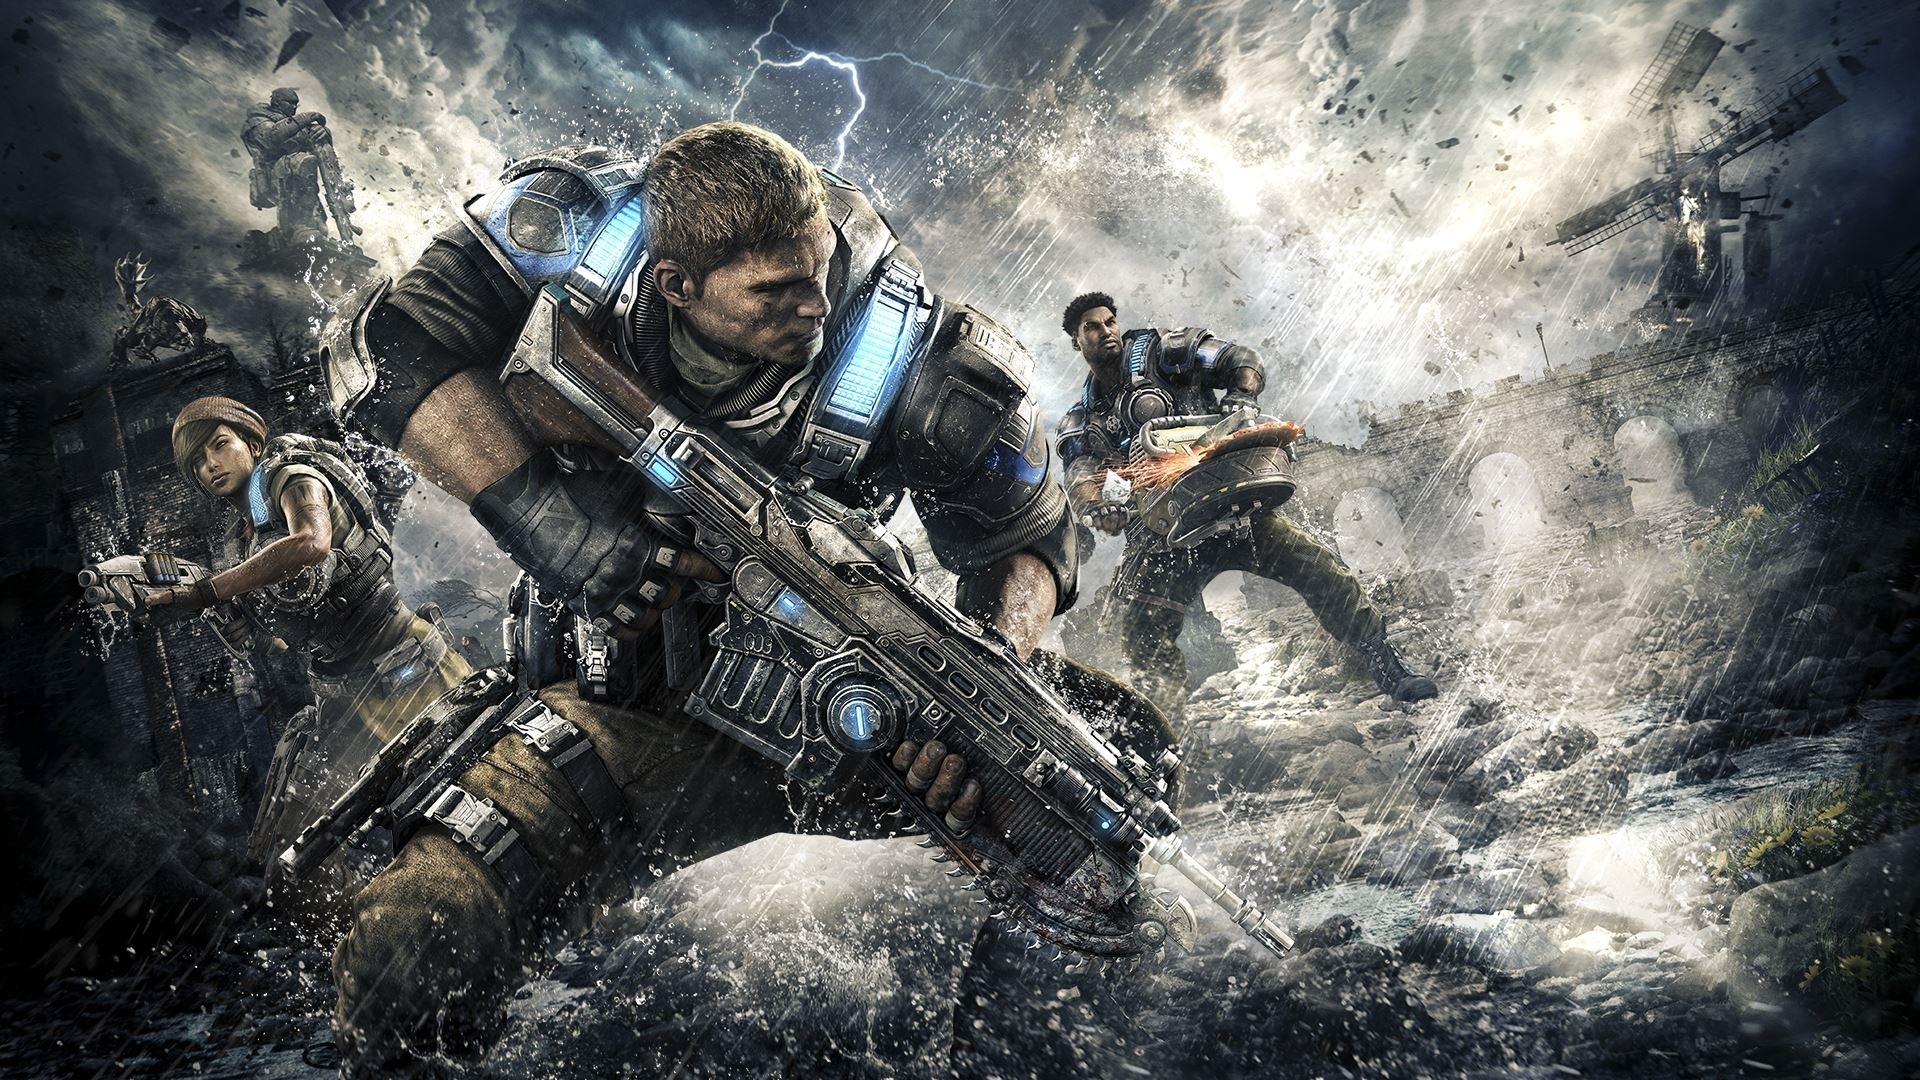 Gears Of War cool background